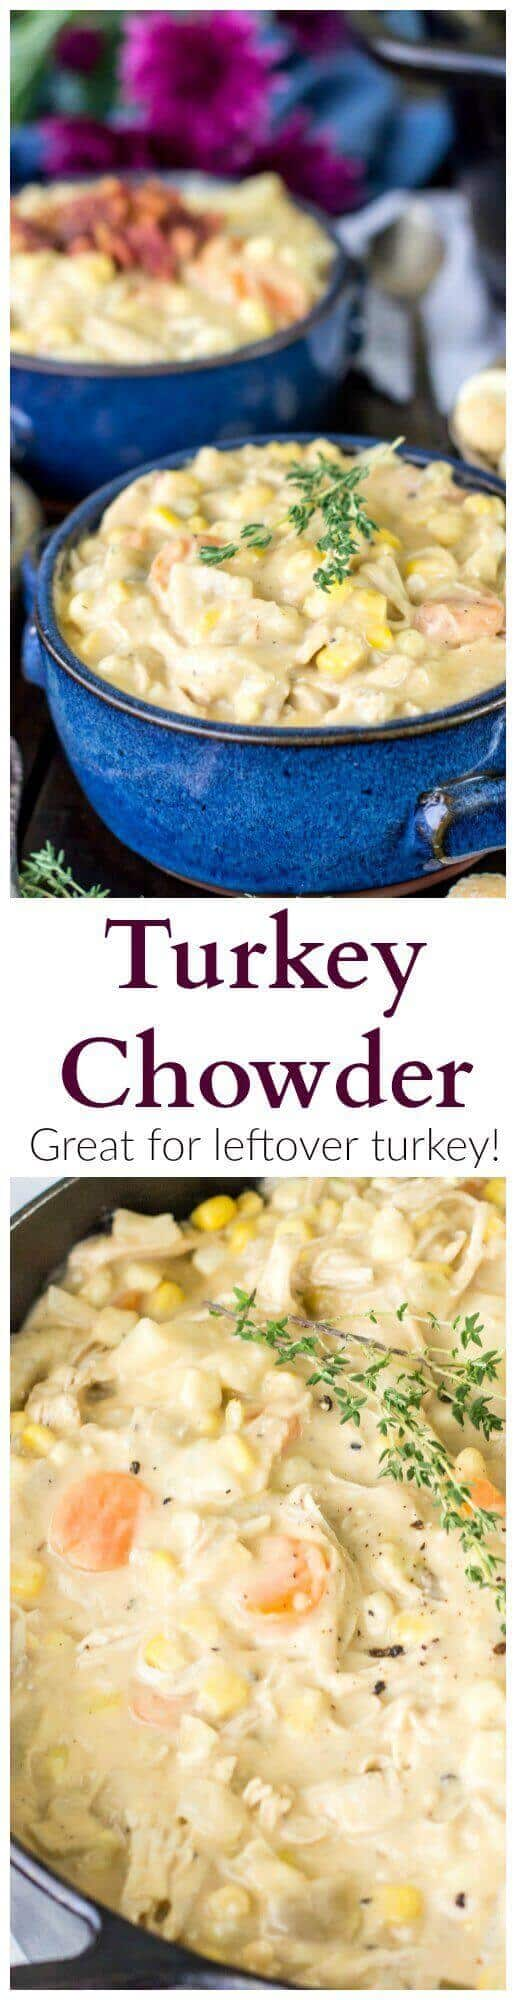 turkey-chowder-great-for-leftover-turkey